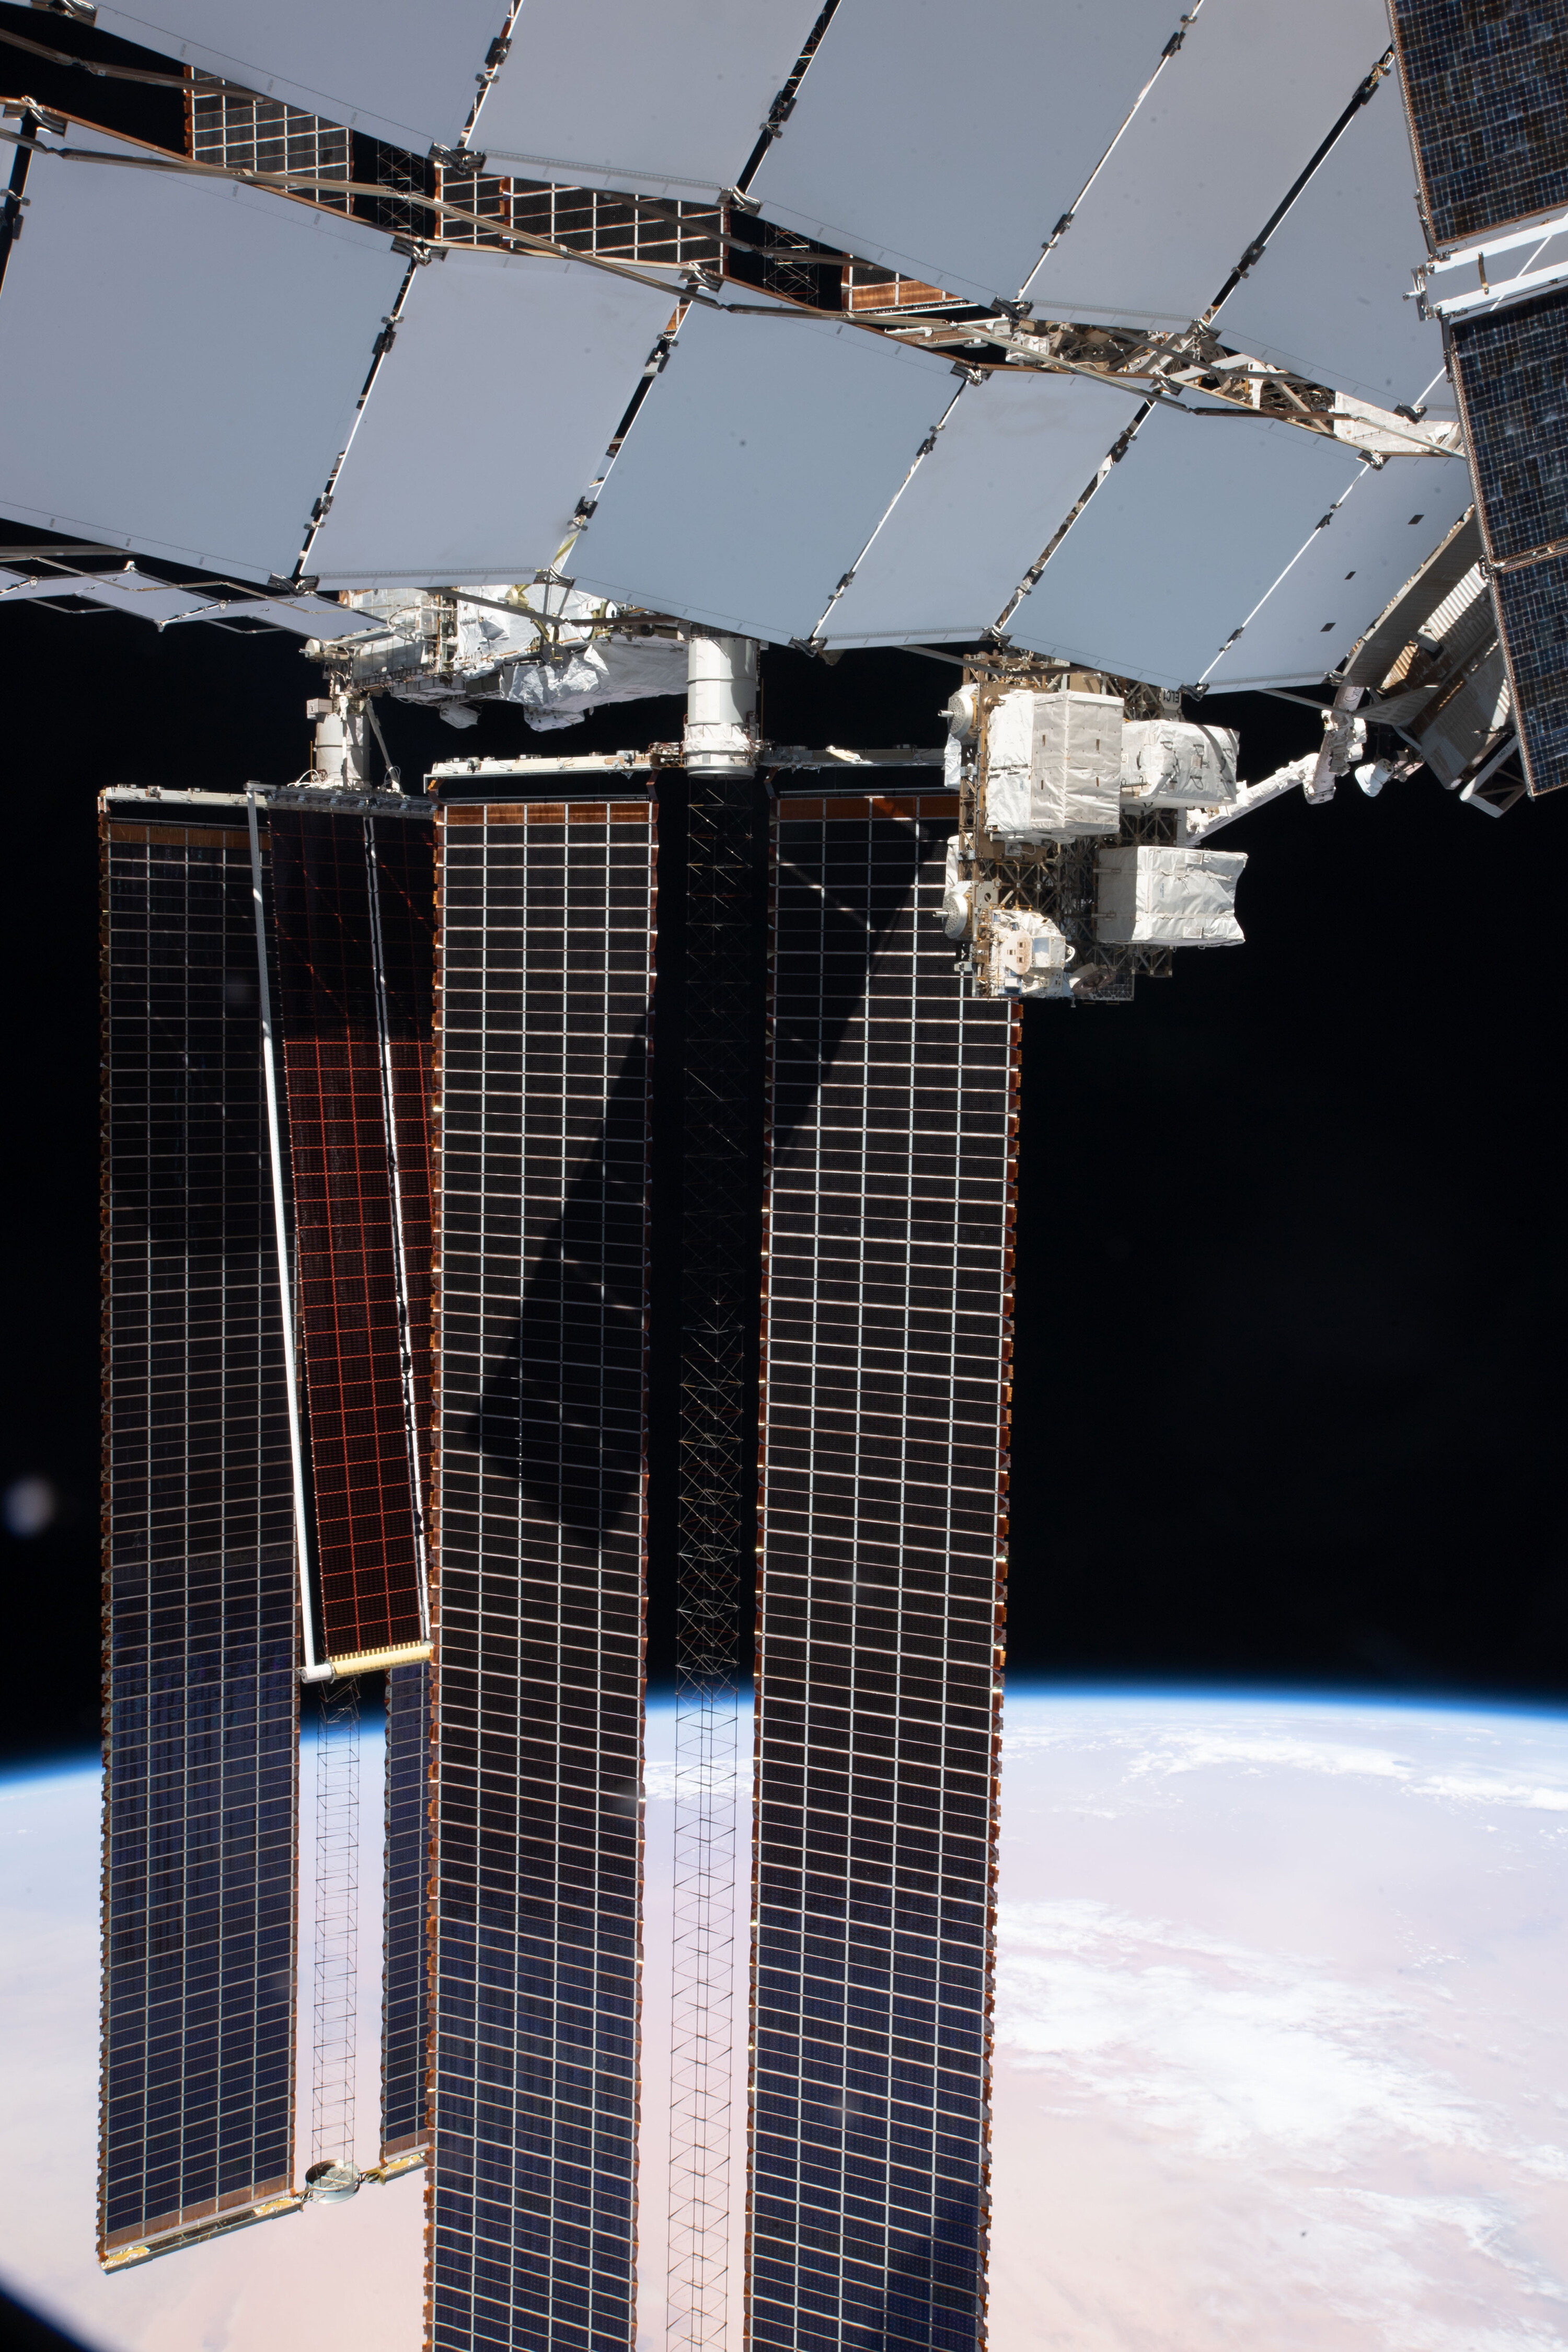 Astronauts installed a giant solar panel outside the space station